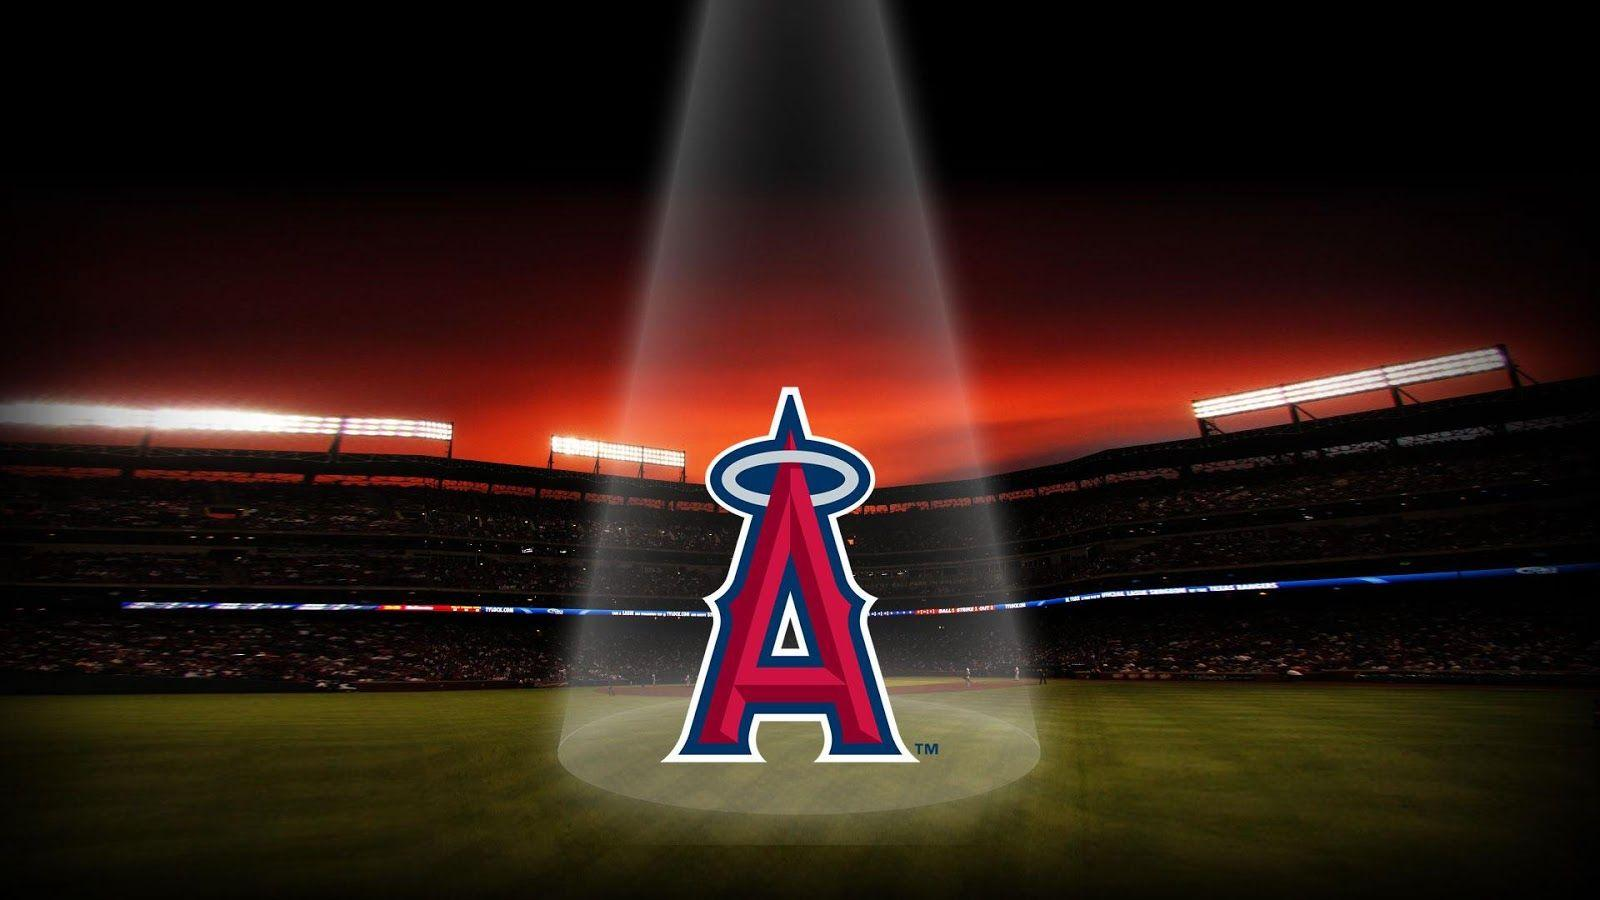 Los Angeles Angels Wallpaper | 1mobile.